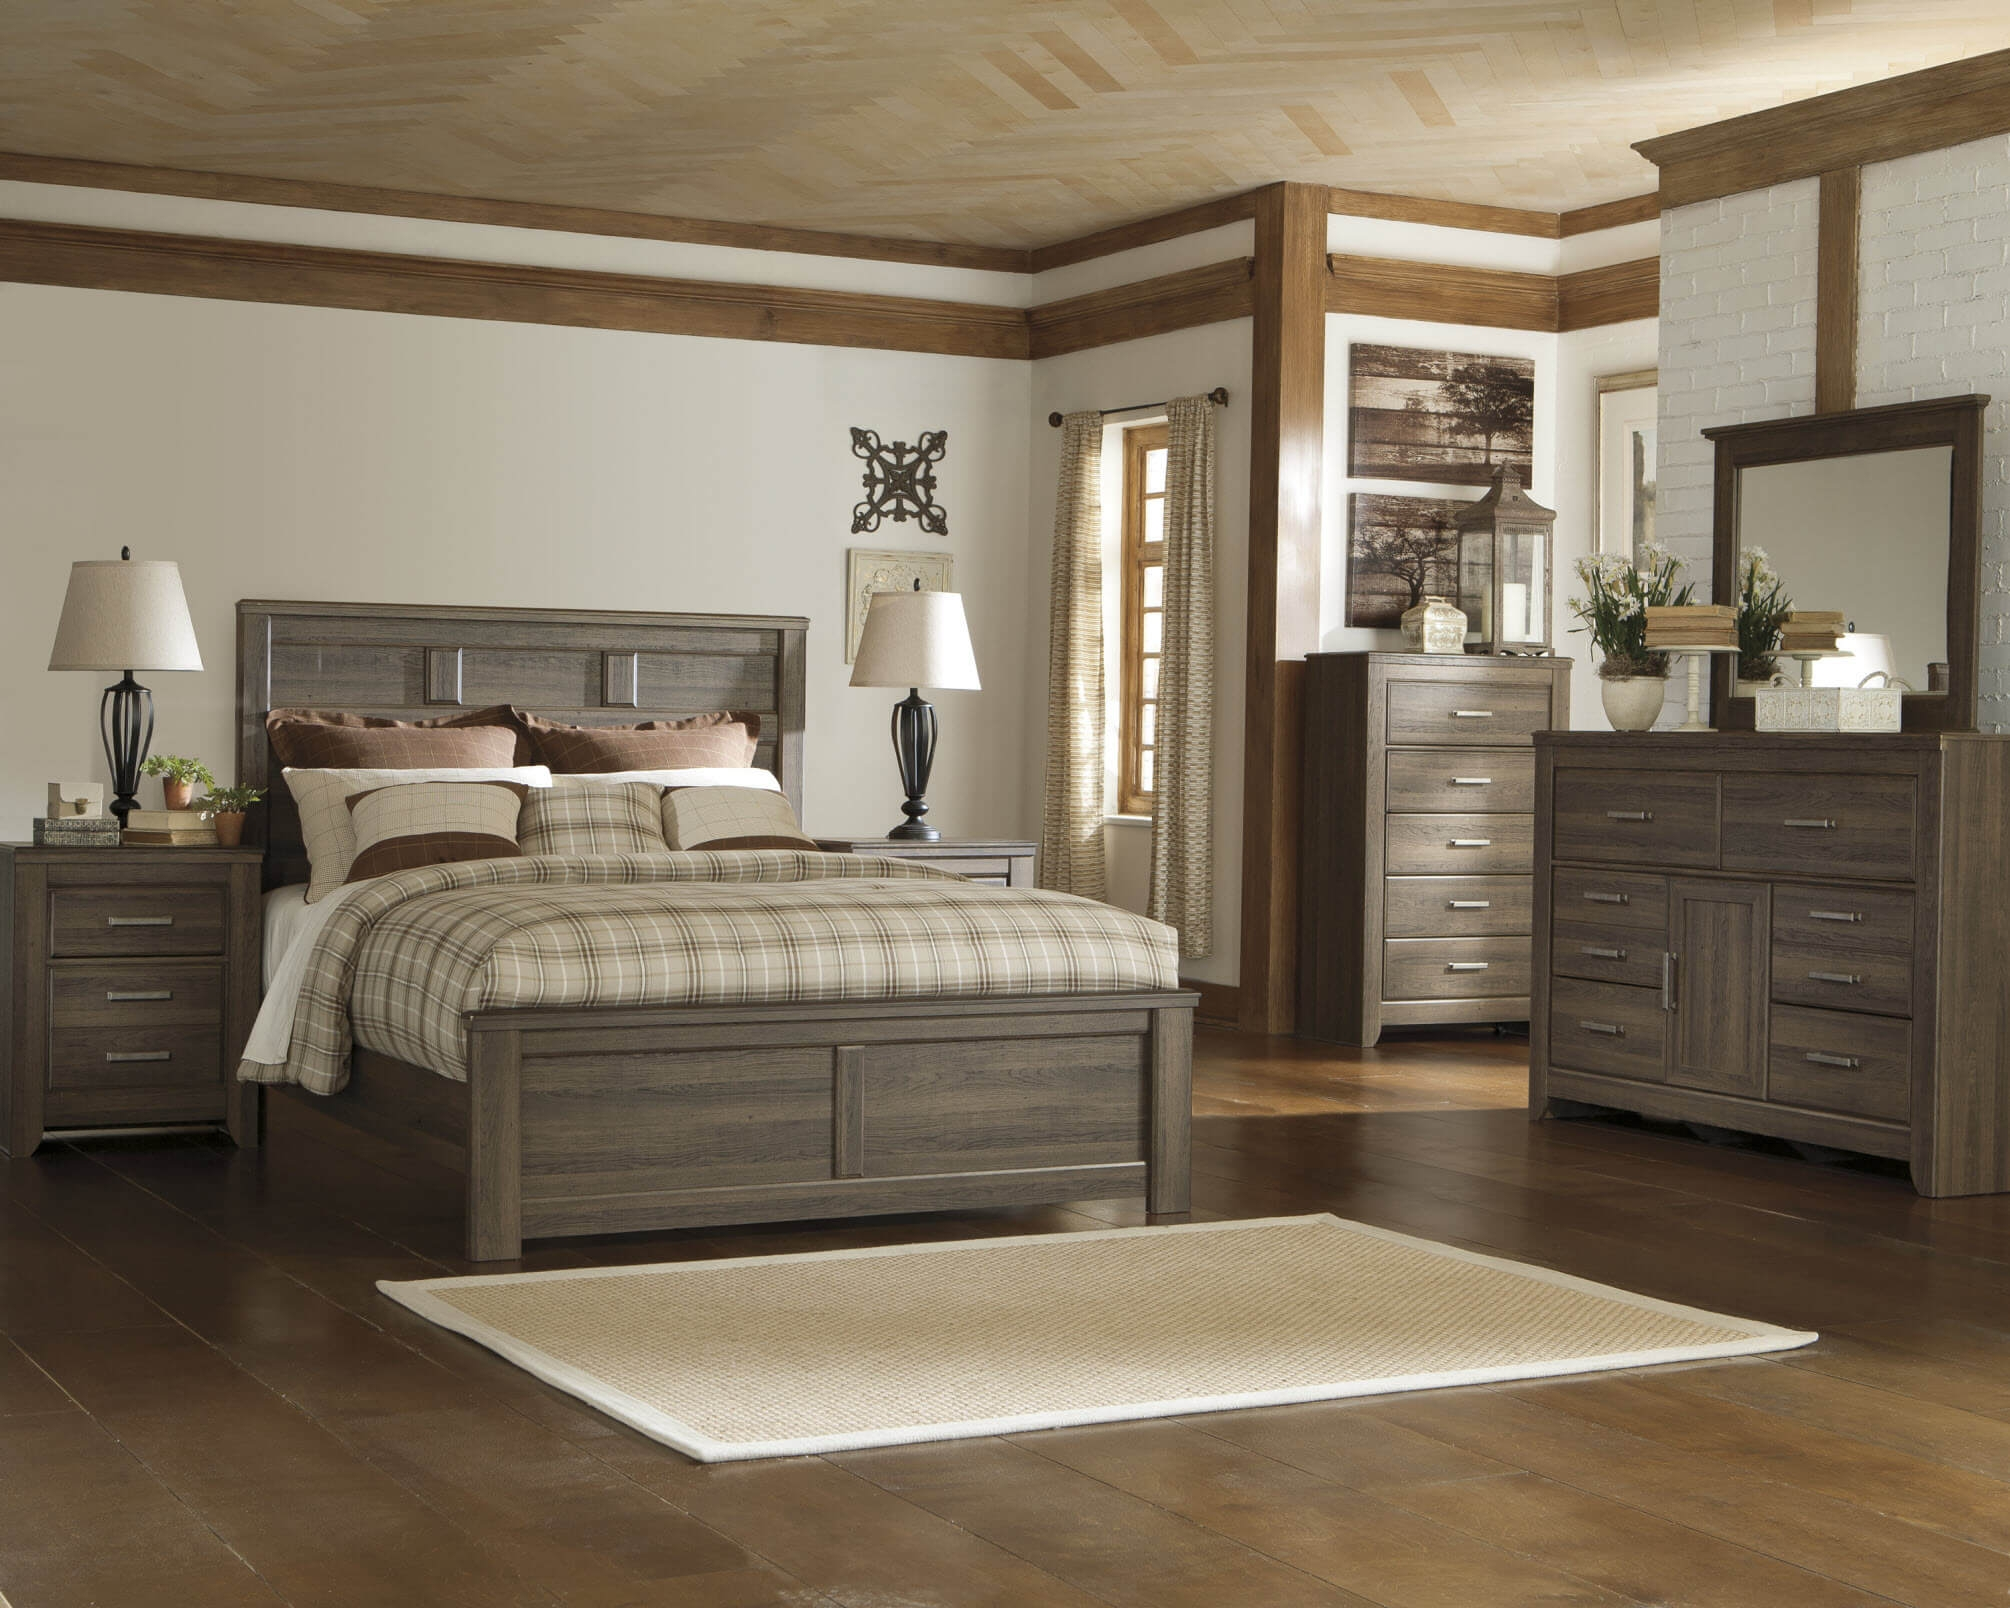 b251 juarano ashley bedroom set